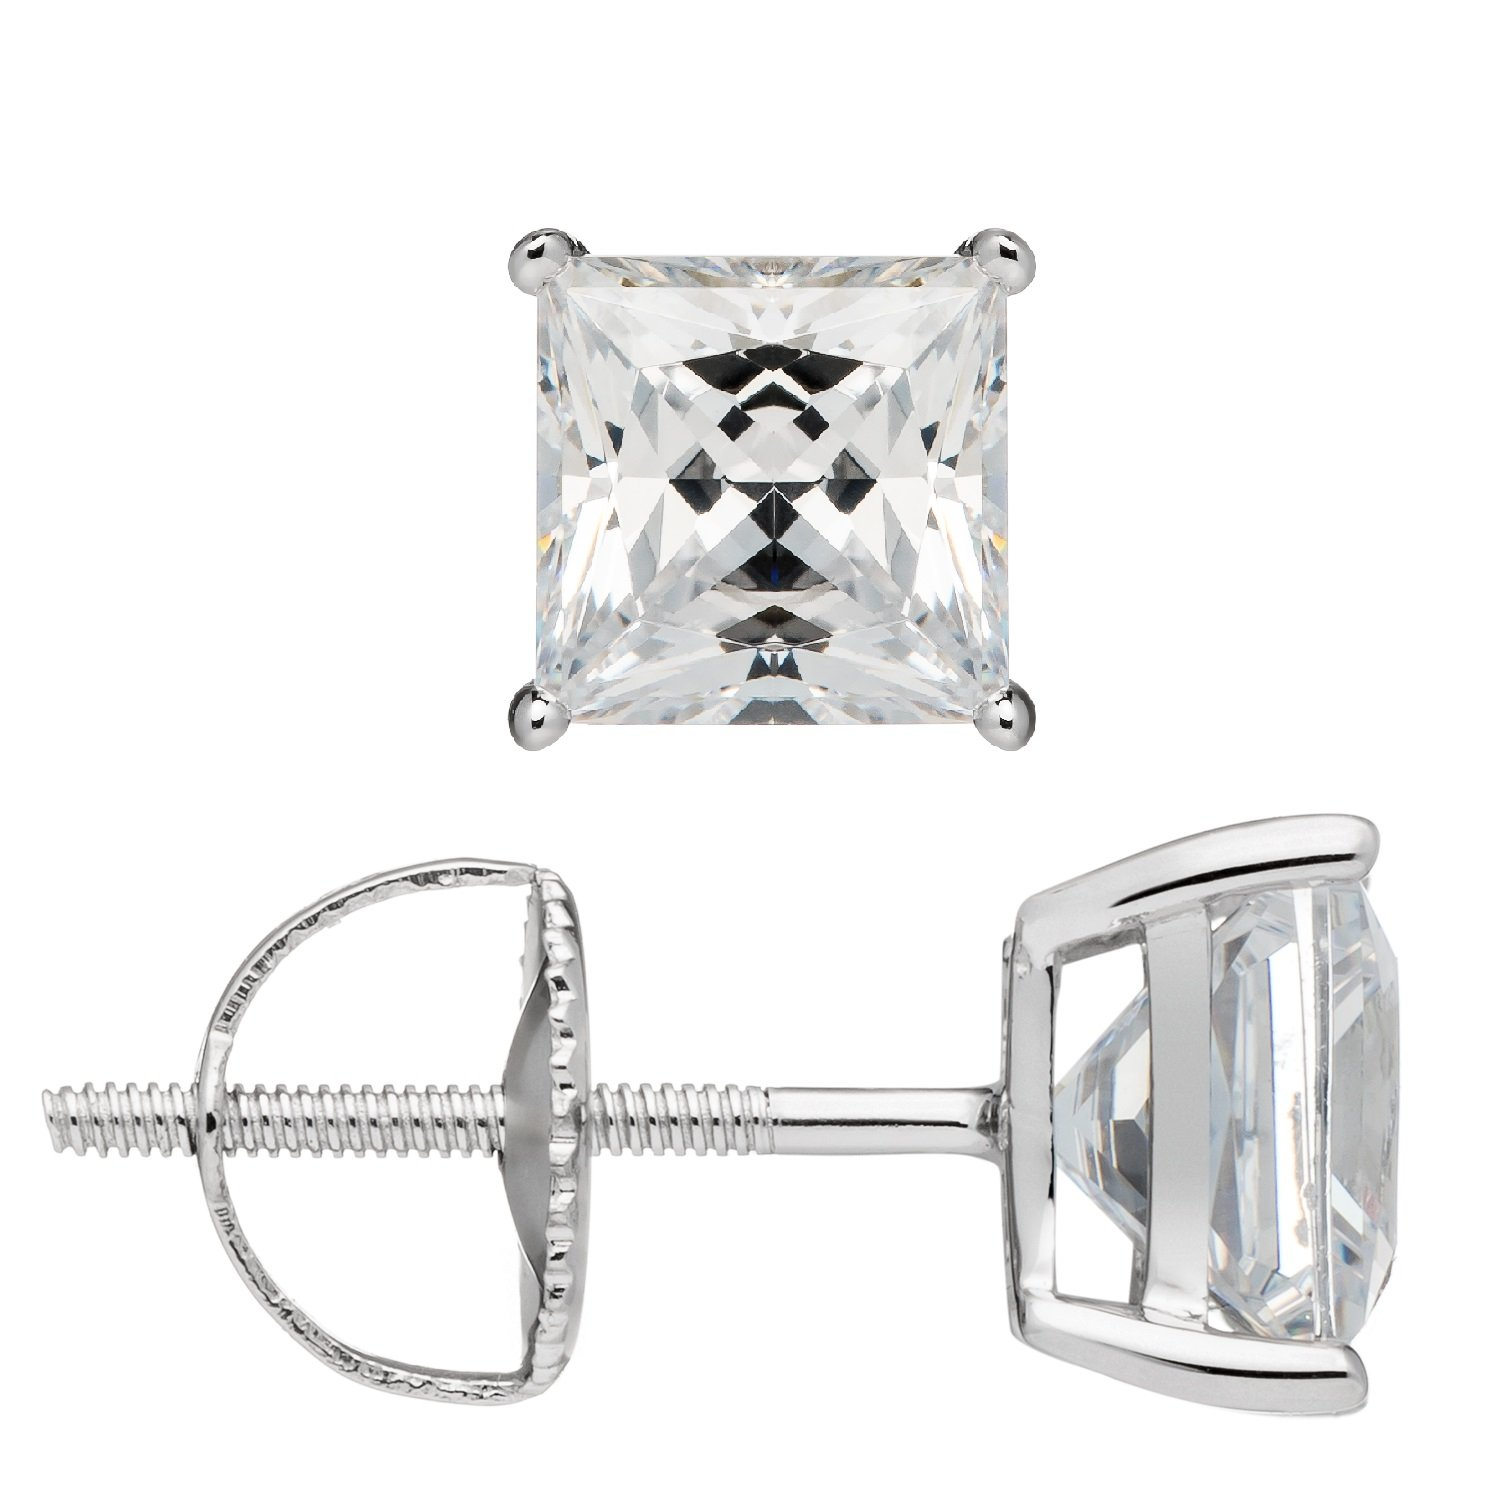 Everyday Elegance | 14K Solid White Gold Earrings | Princess Cut Cubic Zirconia Stud | Screw Back Posts | 3.0 ctw | Gift Box